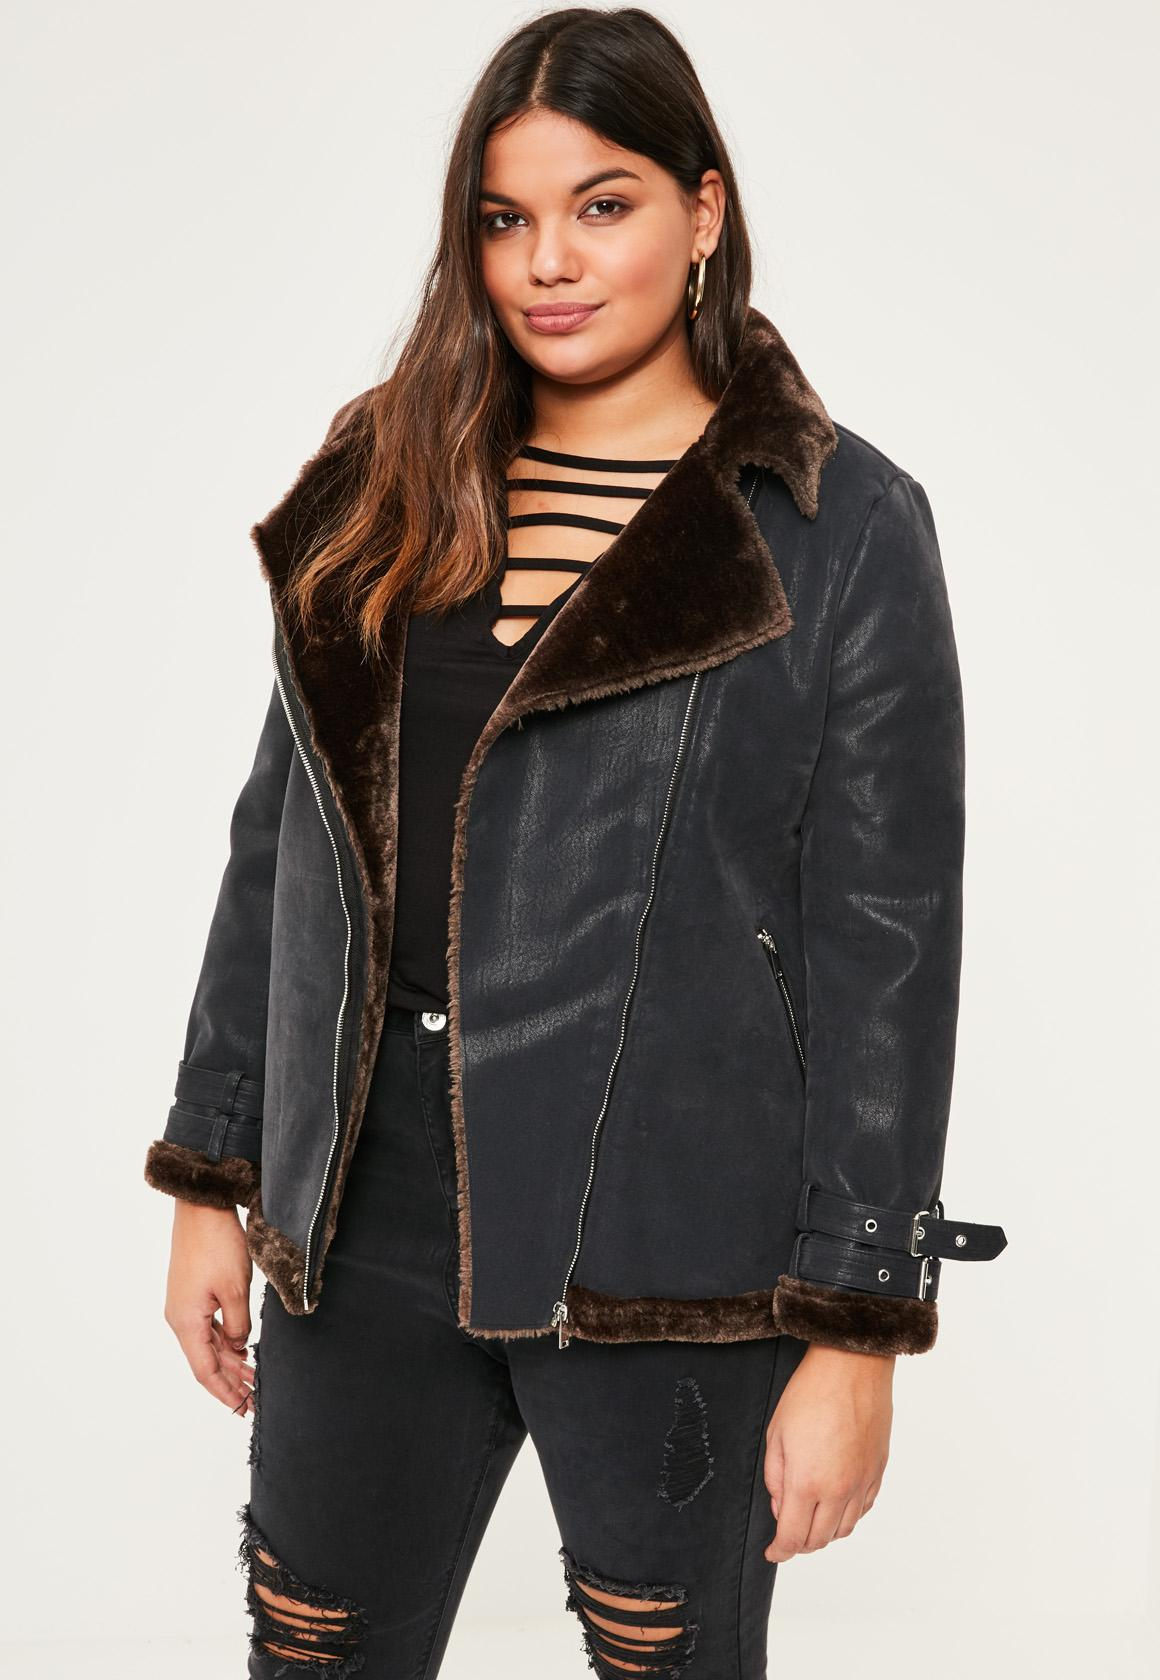 Black Faux Fur Coat With Leather Sleeves - Tradingbasis